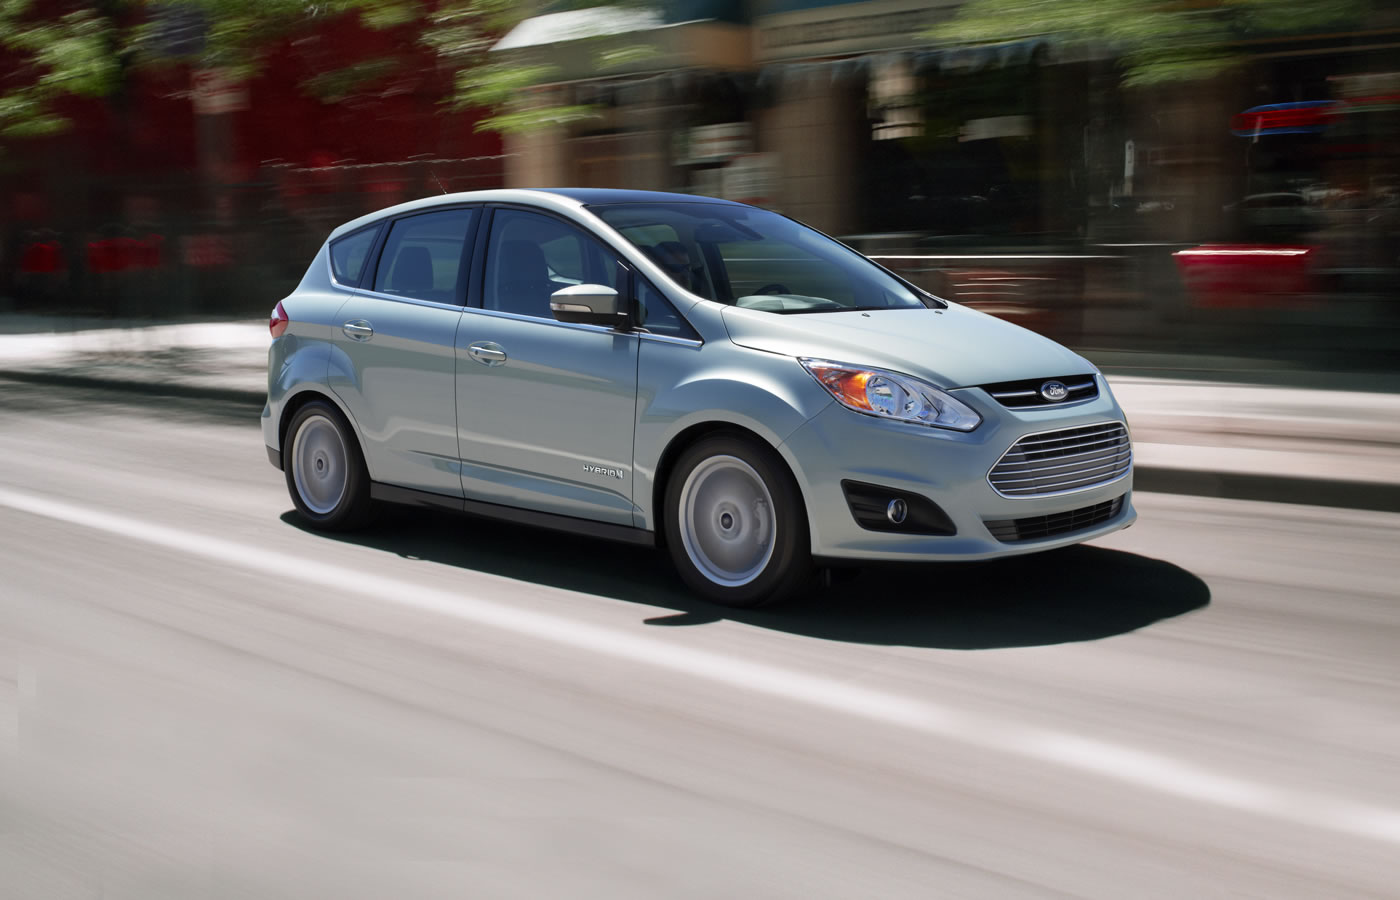 ford c-max seriess #9